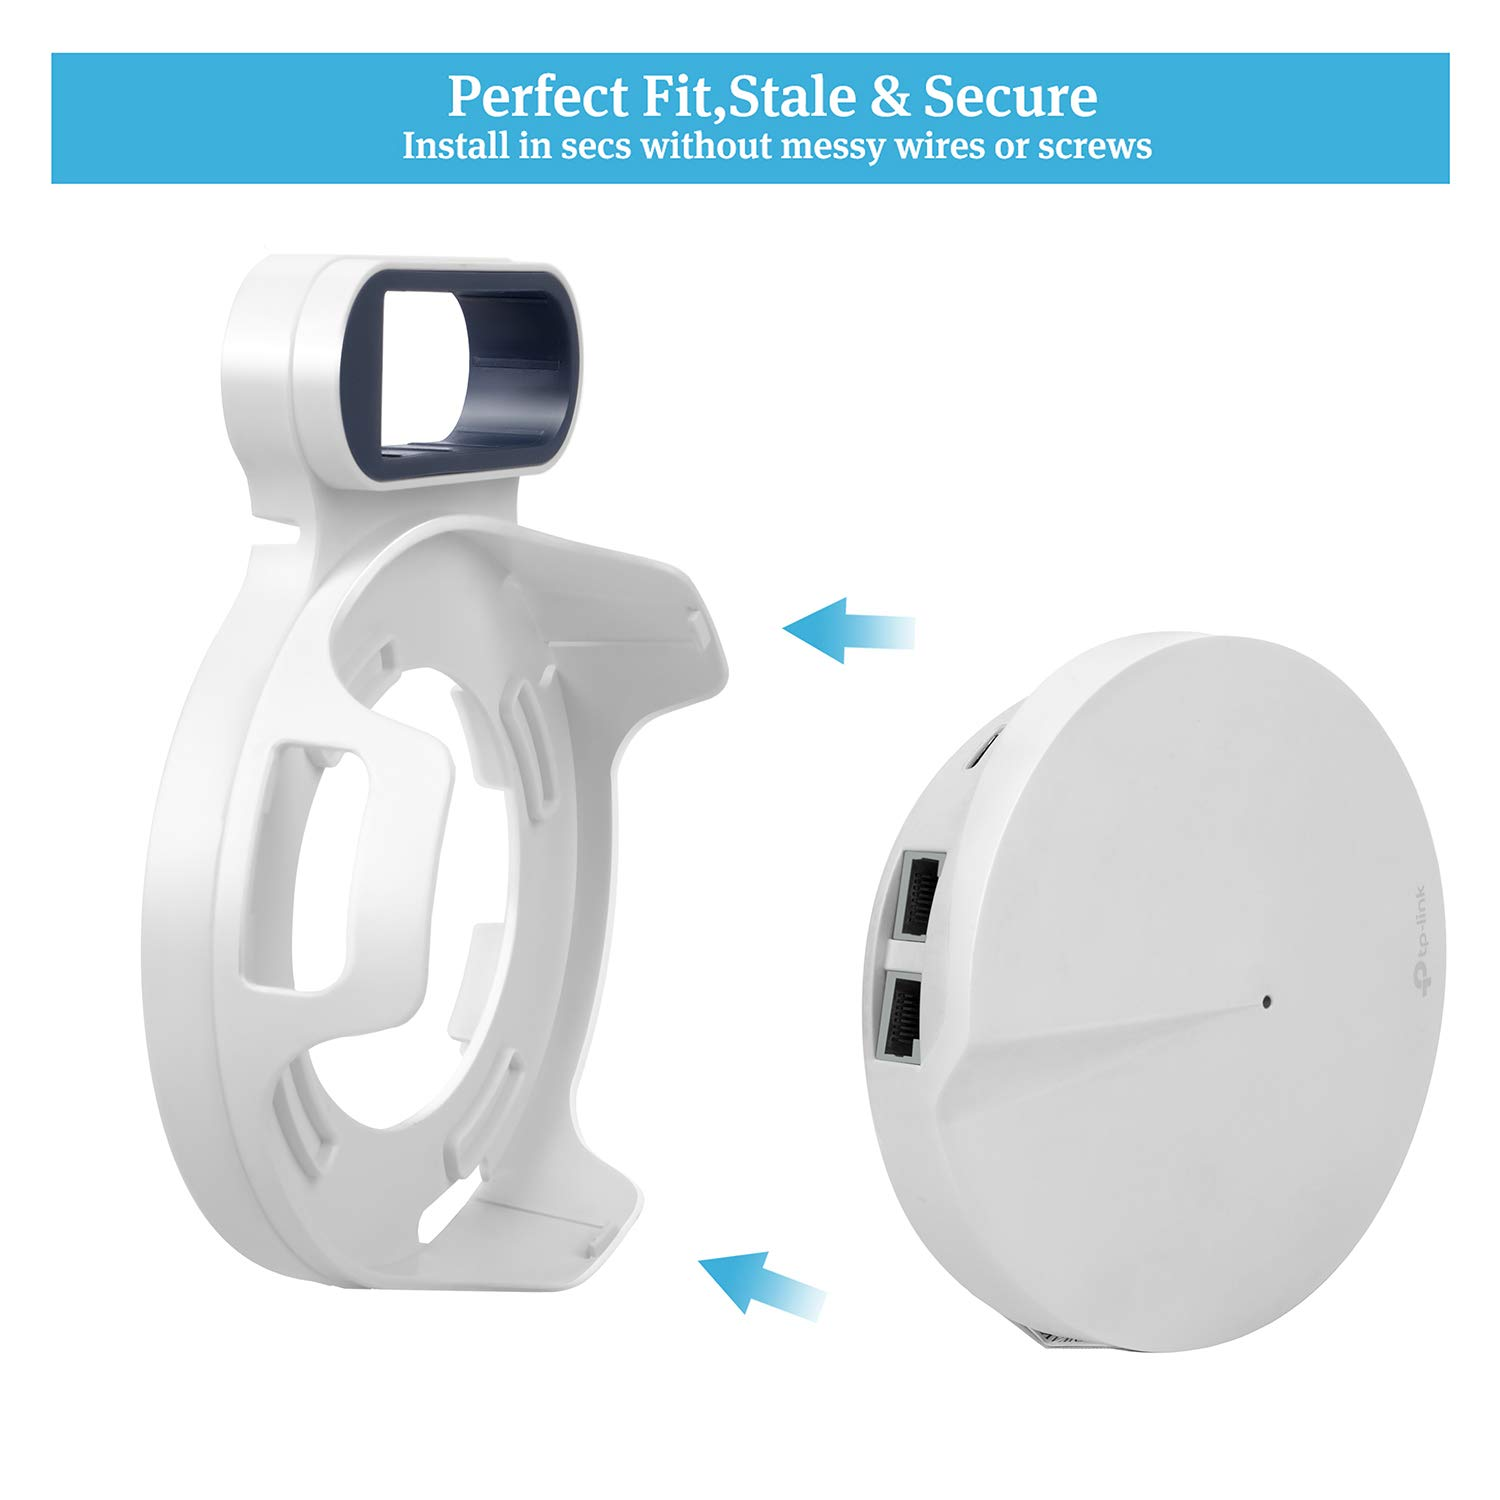 Sturdy Bracket Holder for TP-Link Deco M5 Space Saving TP-Link Router Wall Holder Plug in Without Messy Wires or Screws STANSTAR Wall Mount for TP-Link Deco M5 Whole Home Mesh WiFi System